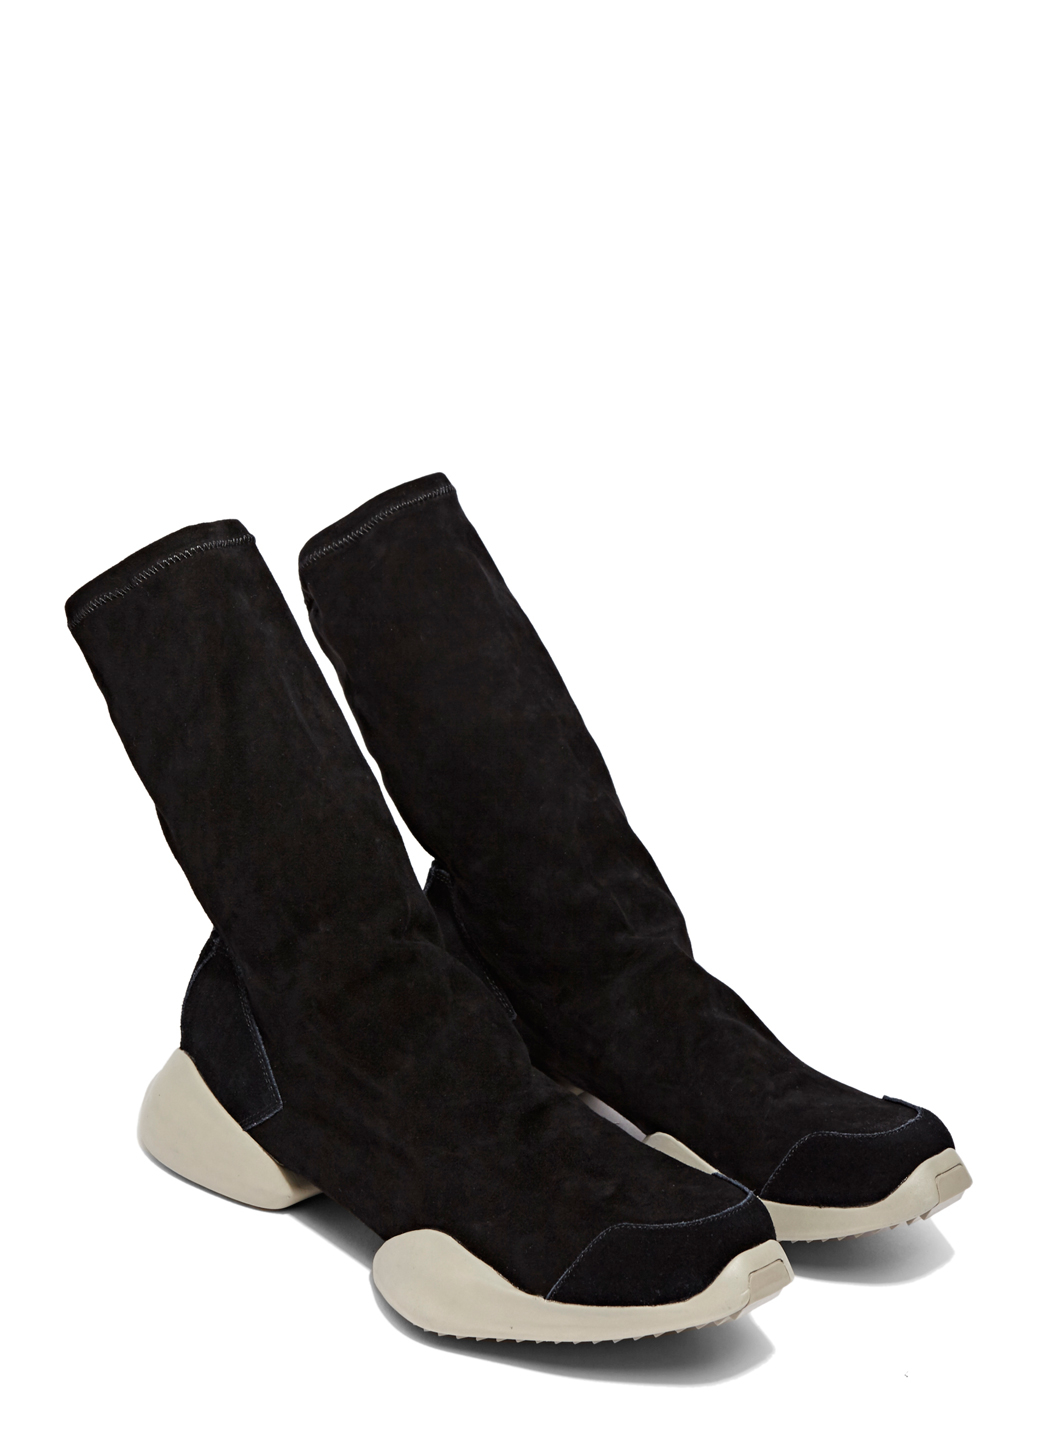 clearance good selling RICK OWENS Ankle boots official cheap online sale under $60 outlet 100% guaranteed cheap sale genuine 5qwUsqSwKr